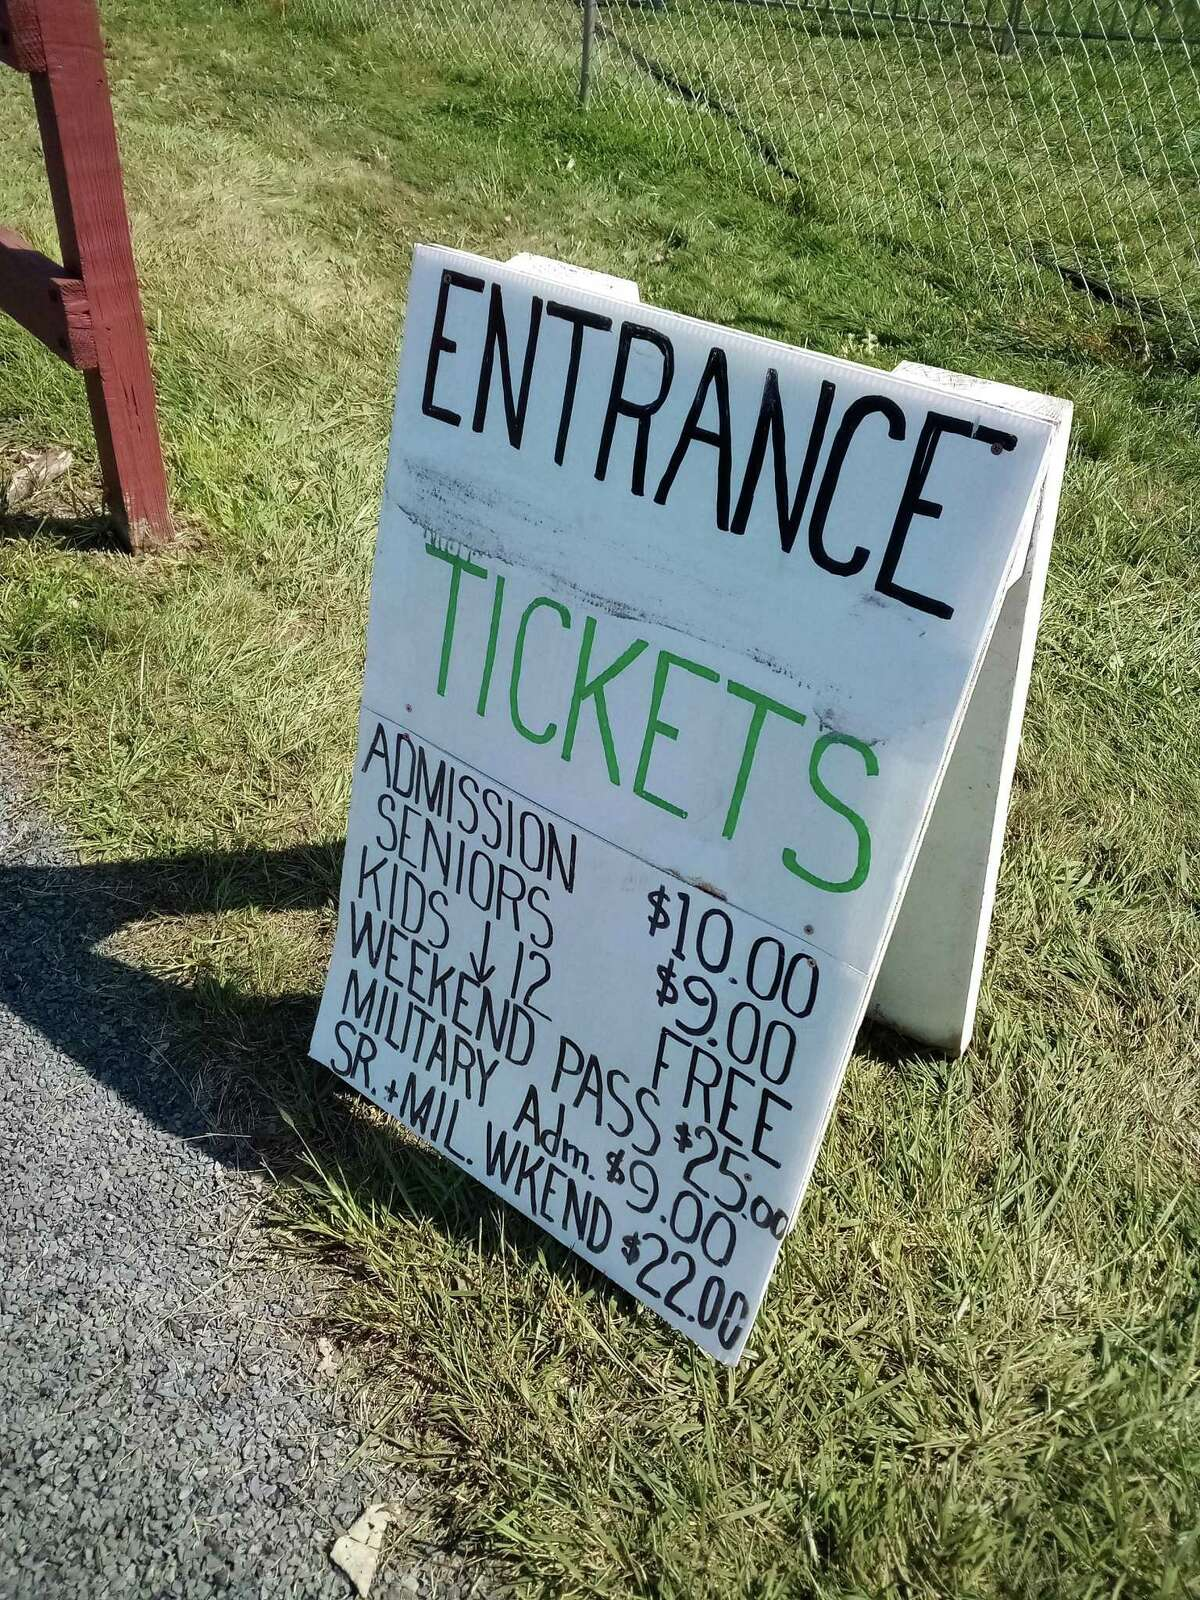 The Haddam Neck Fair welcomed thousands of visitors Saturday, for a day filled with live music, roaring tractors, vendors, barns filled with farm animals, a midway, and plenty of food.